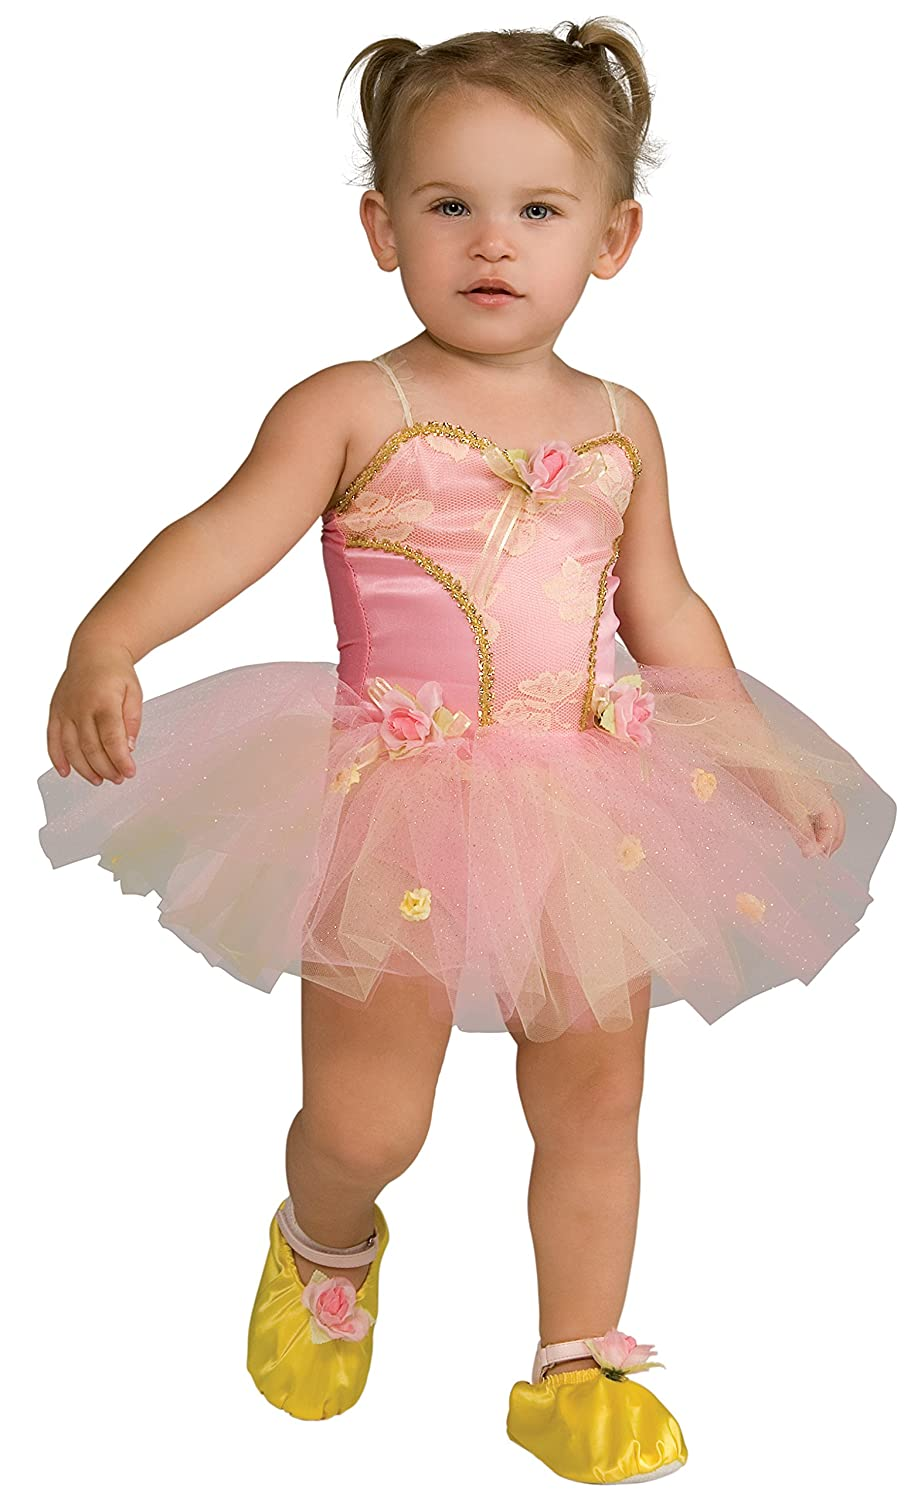 ffd29c798 Amazon.com  Child s Pink Rose Ballerina Dress Up Costume - Small ...